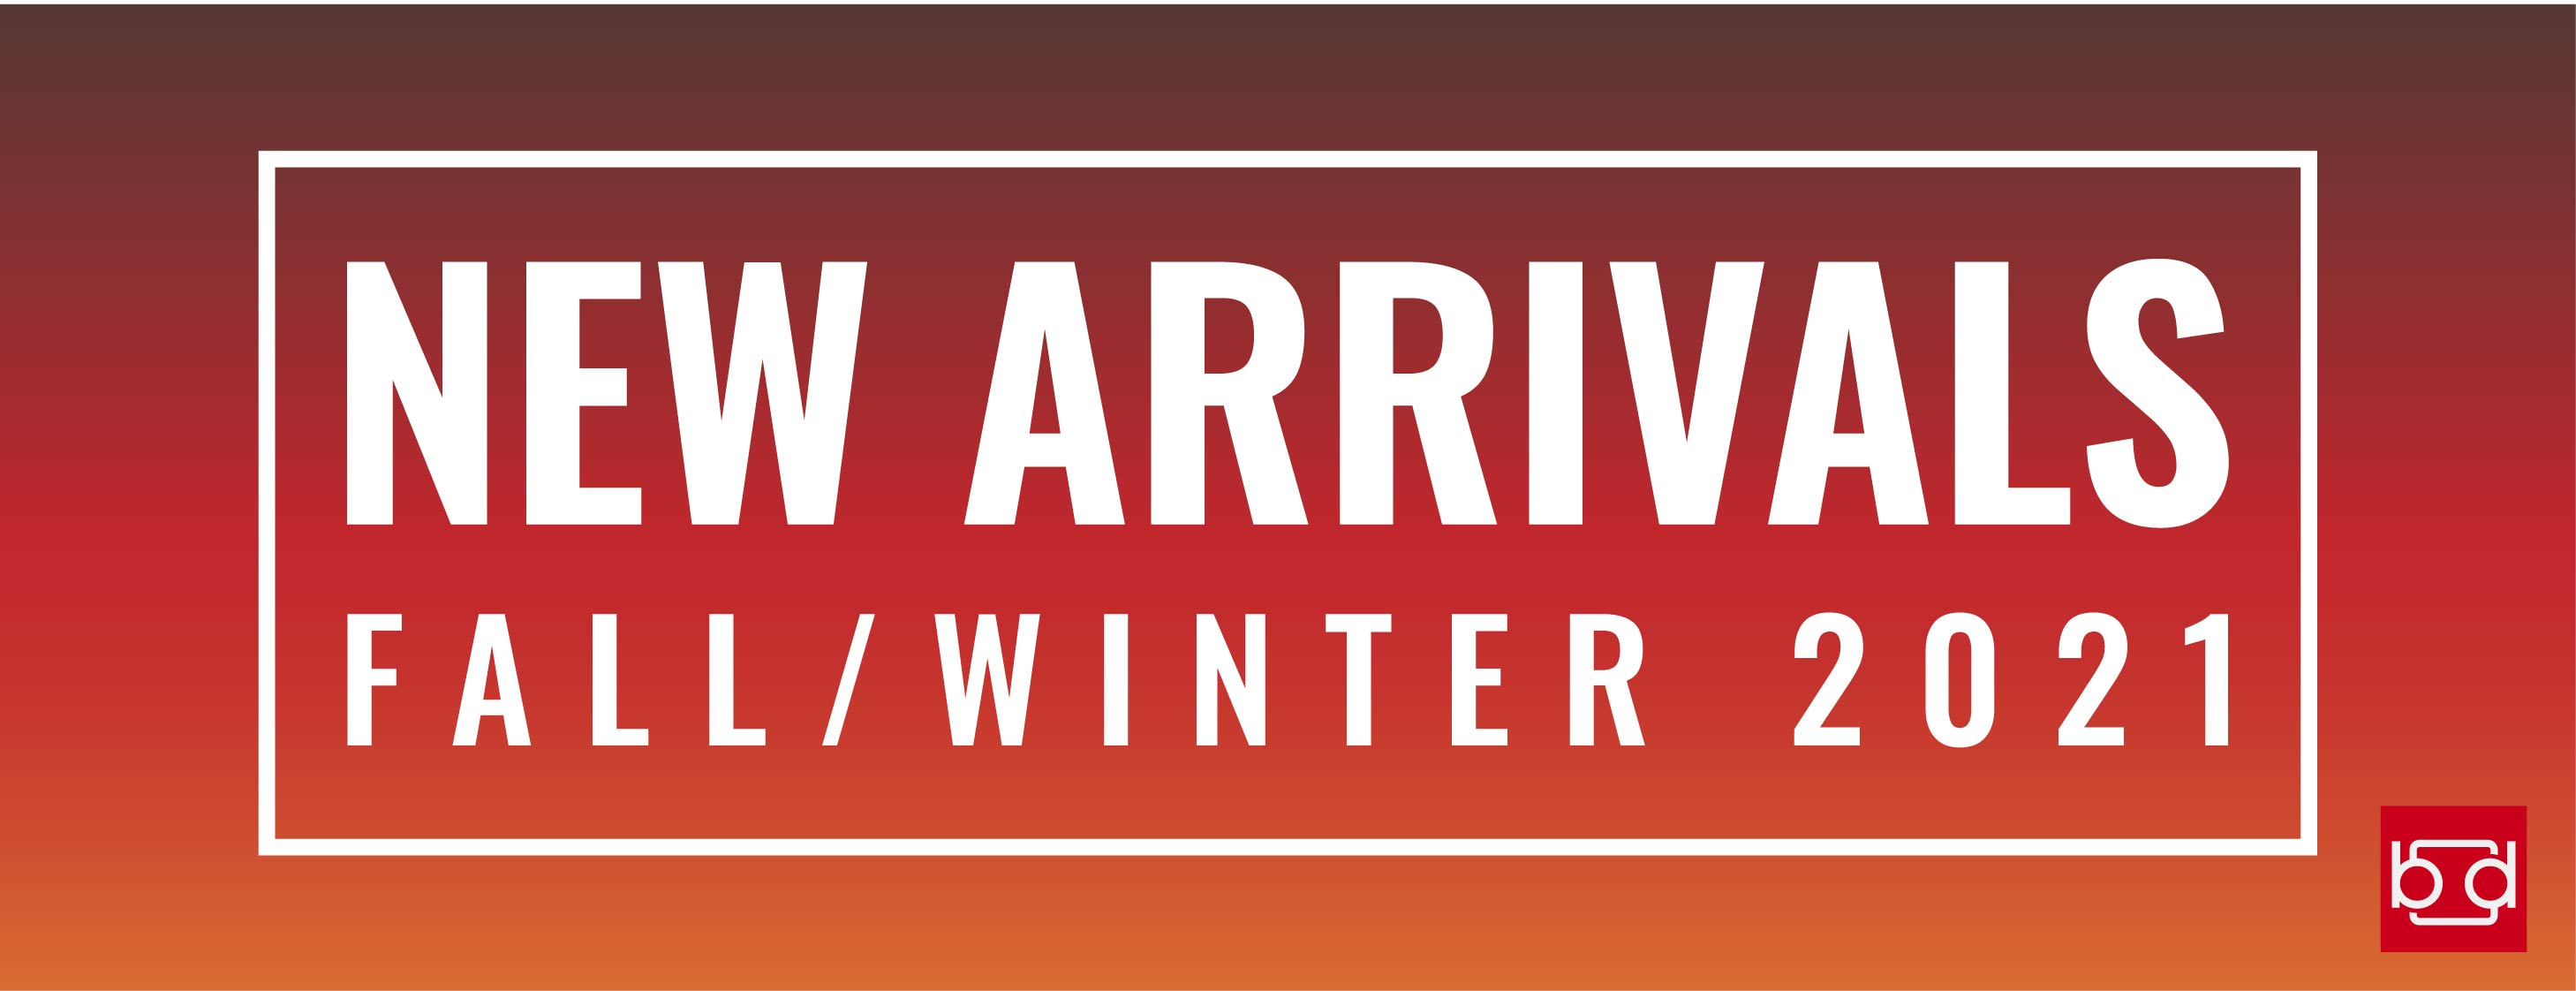 Branded Fall 2021 New Arrivals Apparel Banner